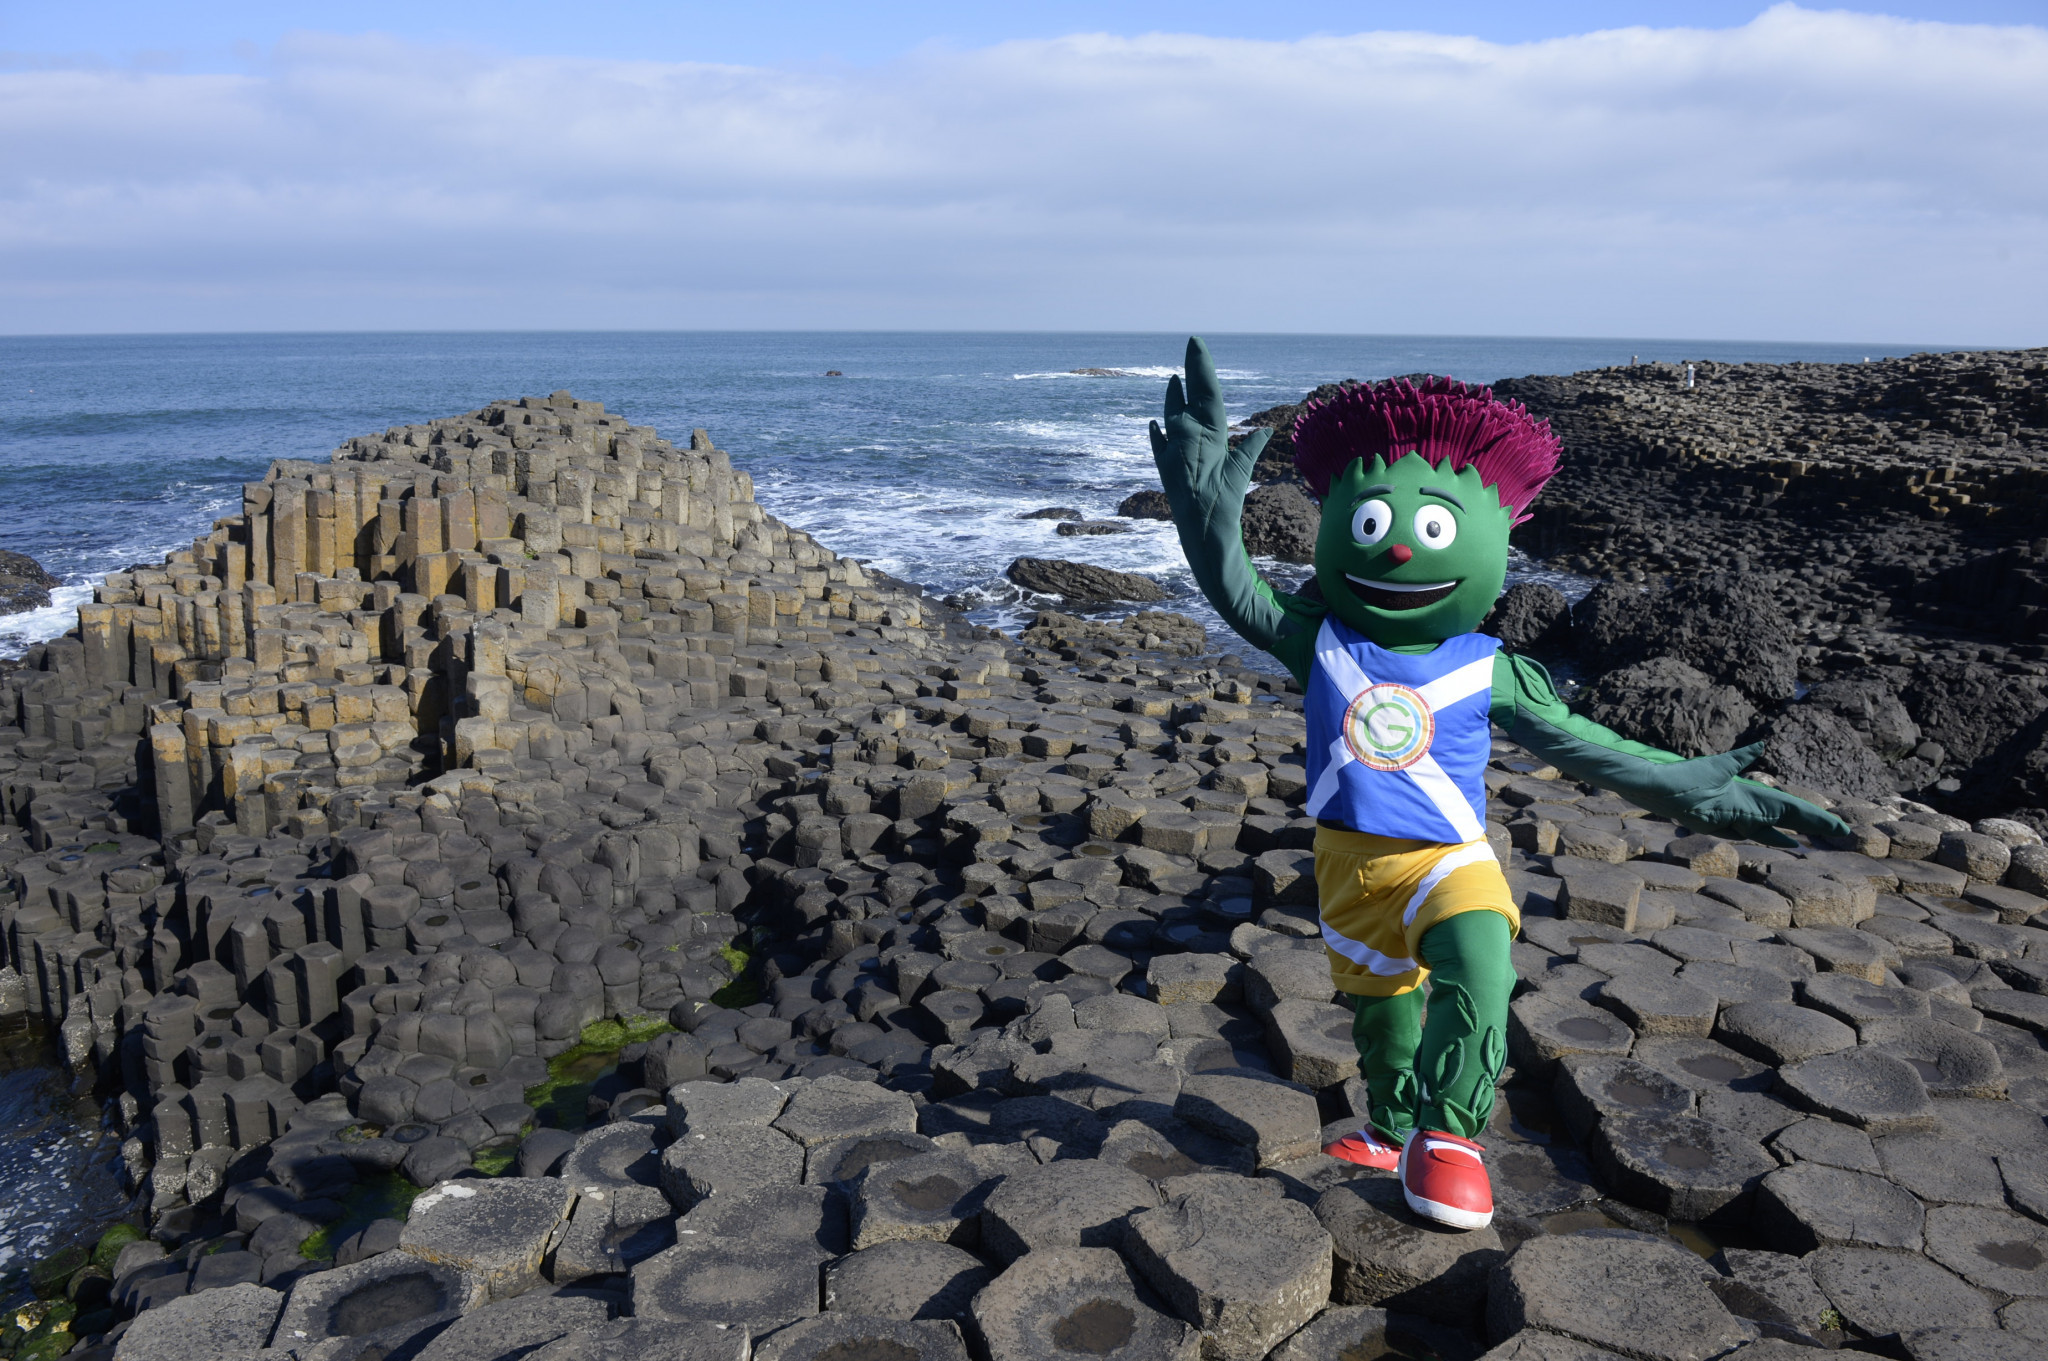 Missing statue of Glasgow 2014 mascot Clyde recovered after seven years